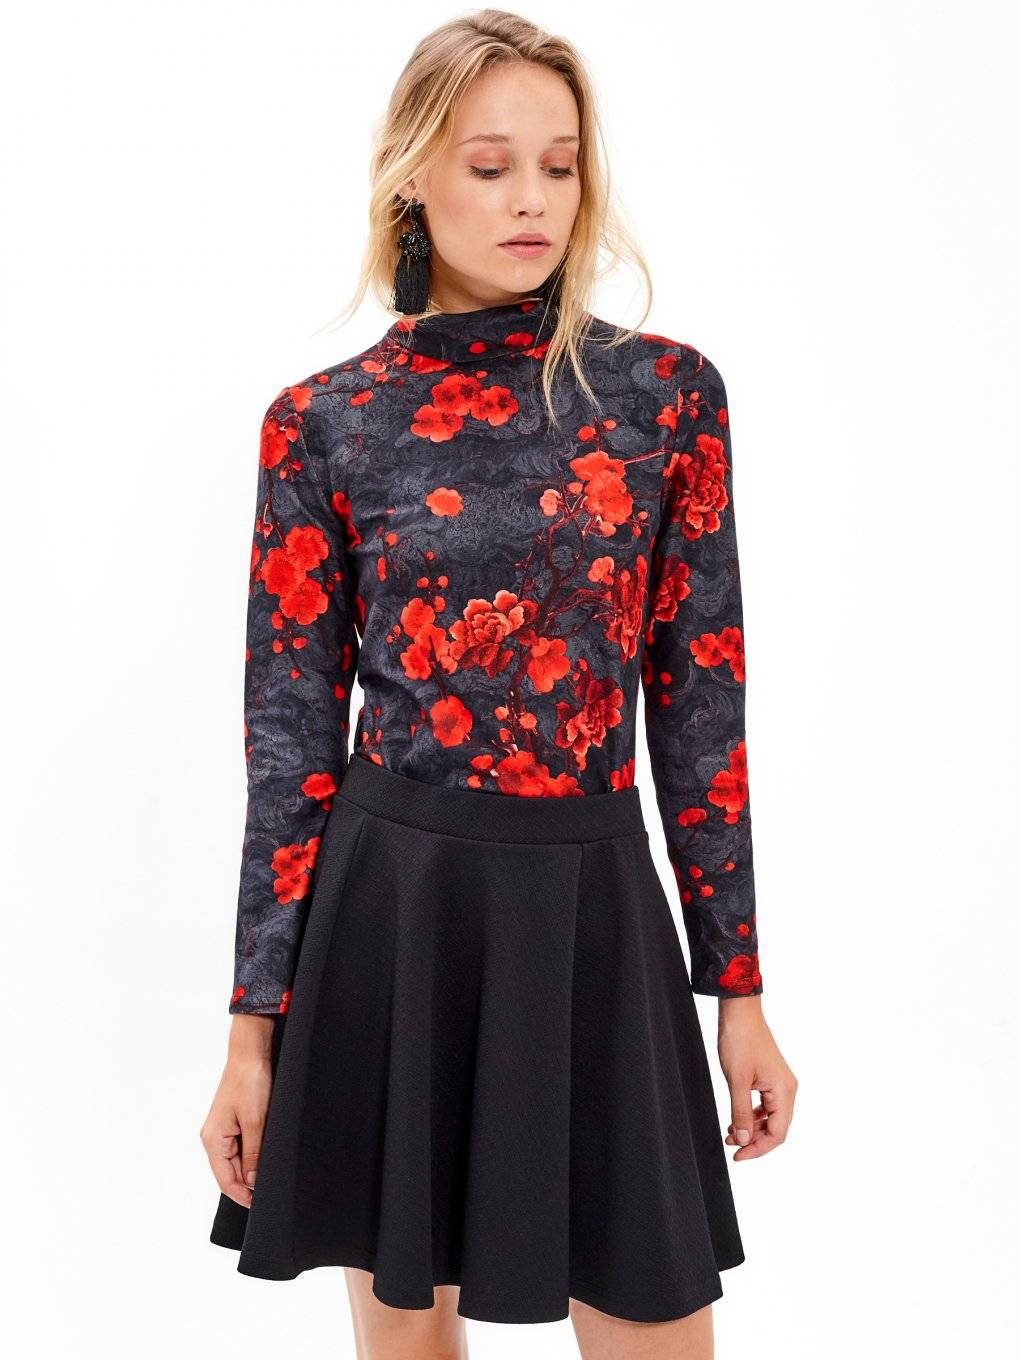 Turtleneck top with floral print